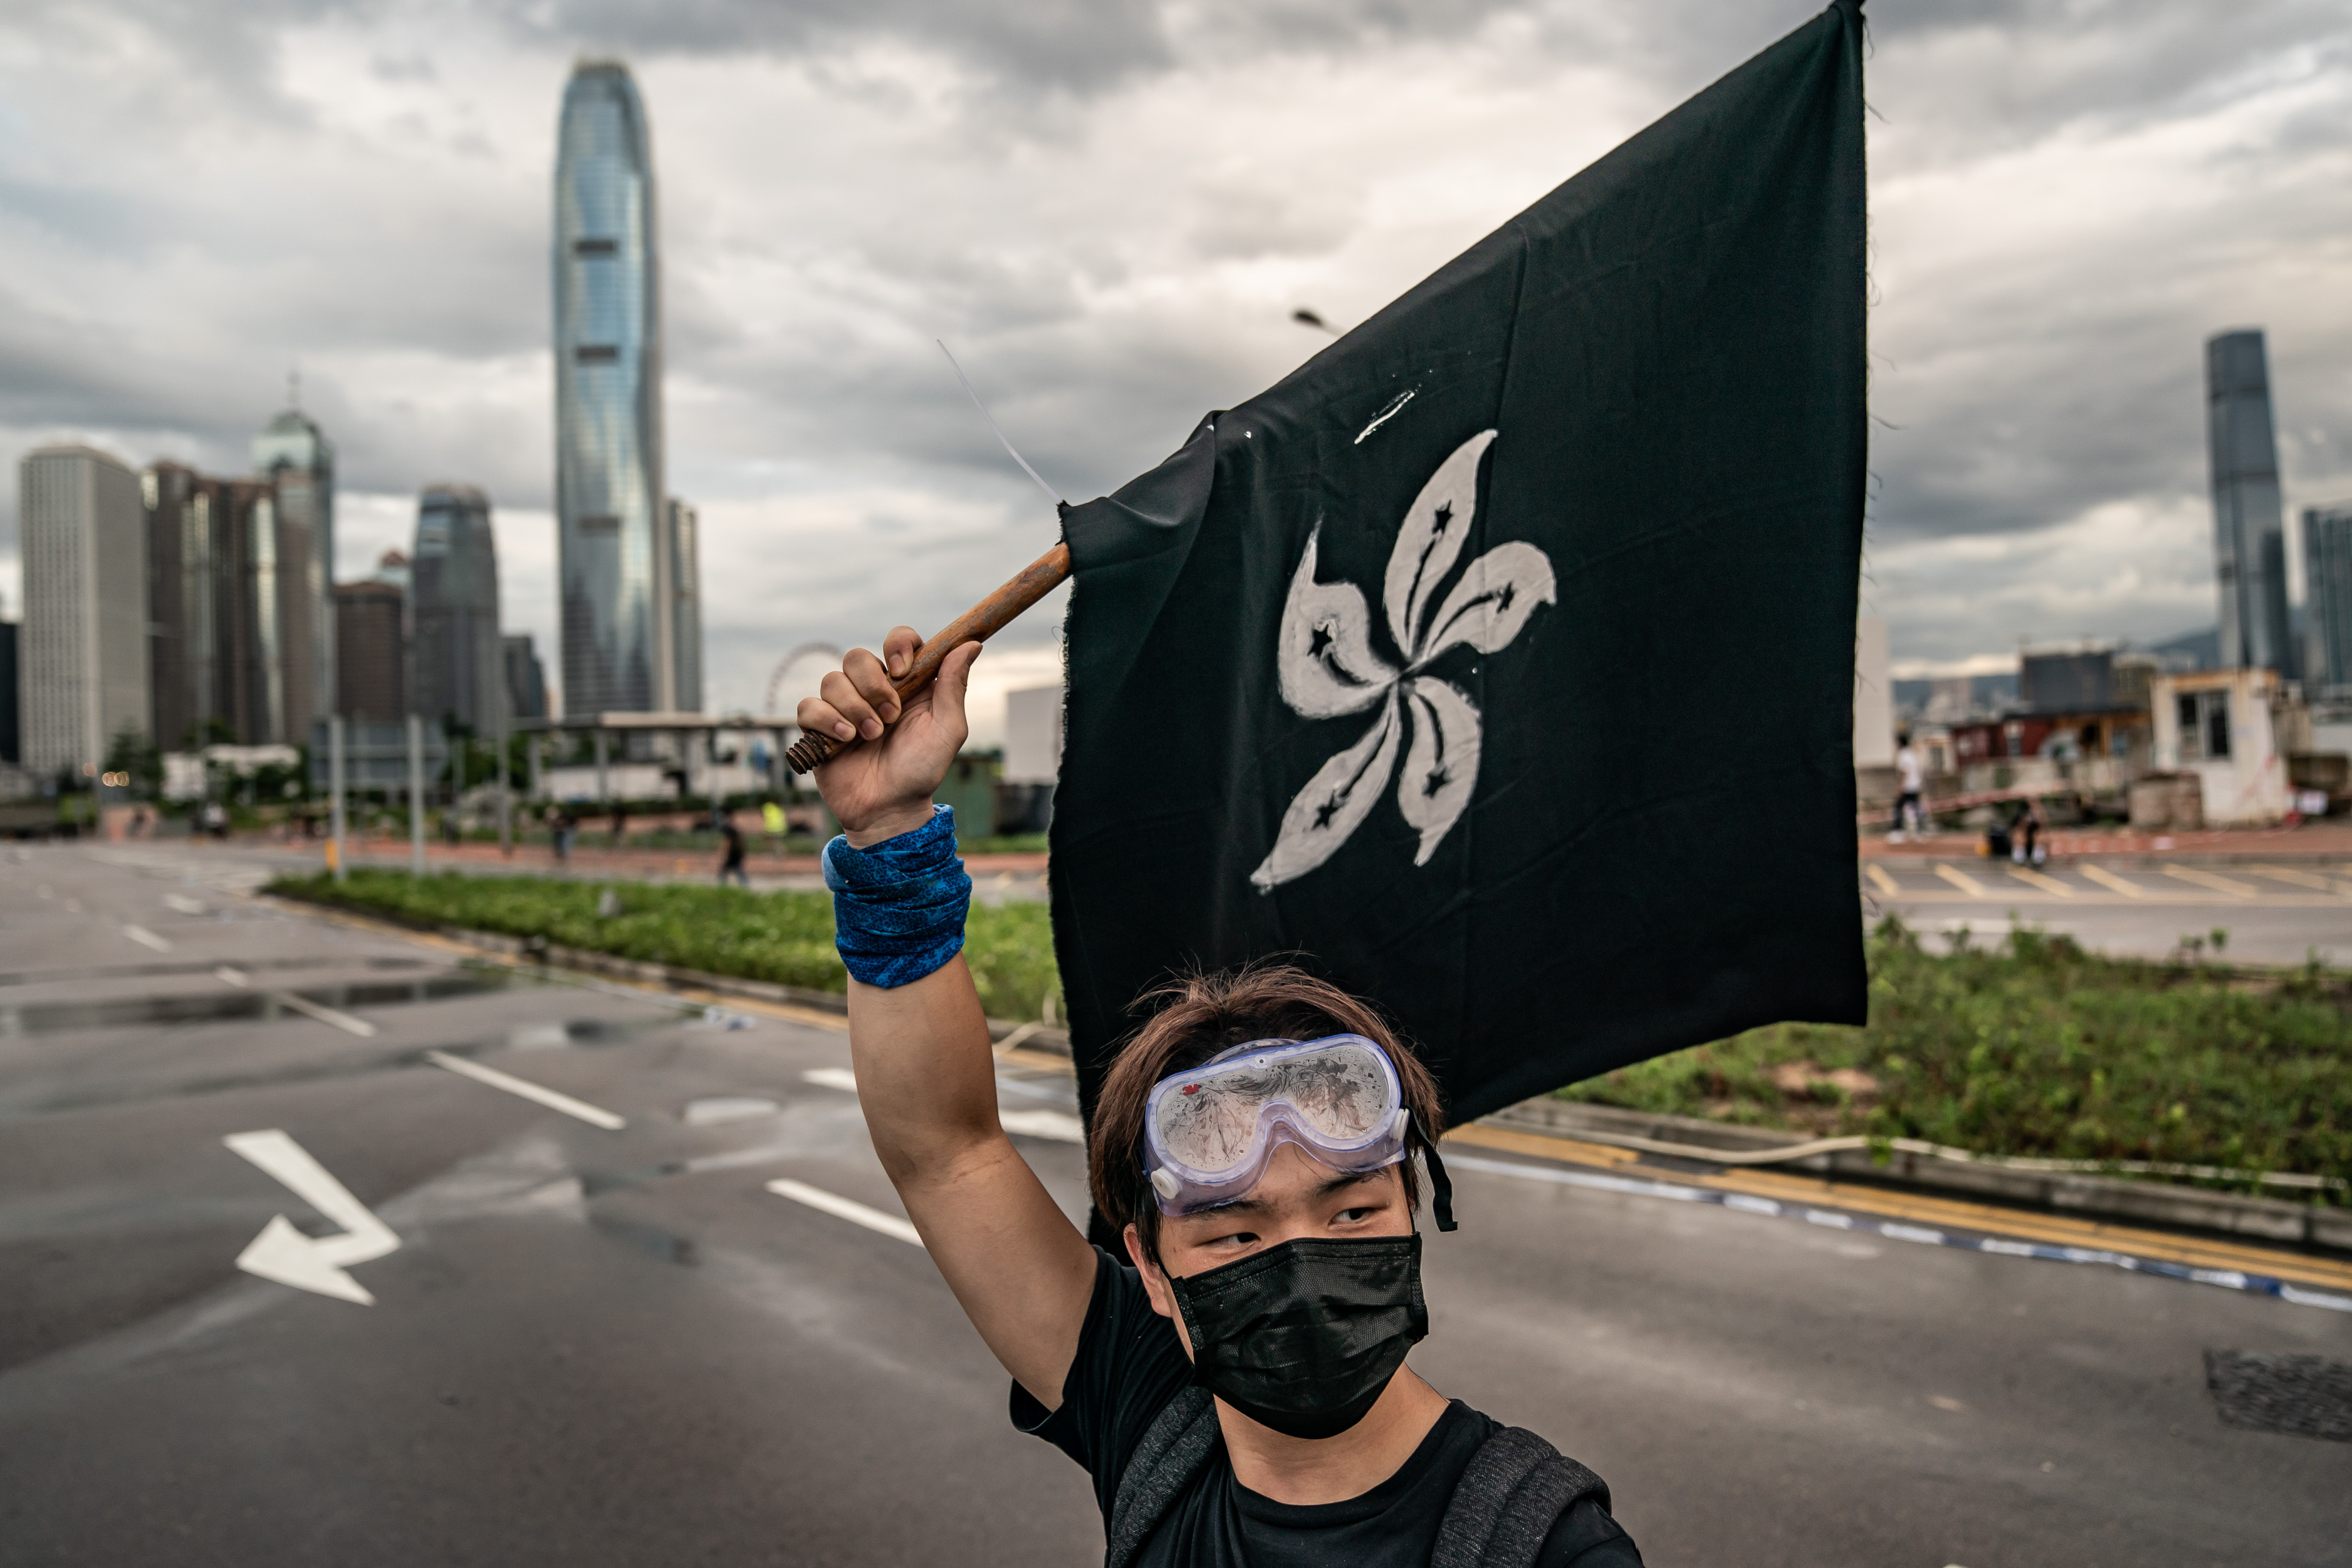 An anti-extradition protester waves a Black Bauhinia flag on a street outside the Legislative Council Complex ahead of the annual flag raising ceremony of 22nd anniversary of the city's handover from Britain to China on July 1, 2019 in Hong Kong, China.